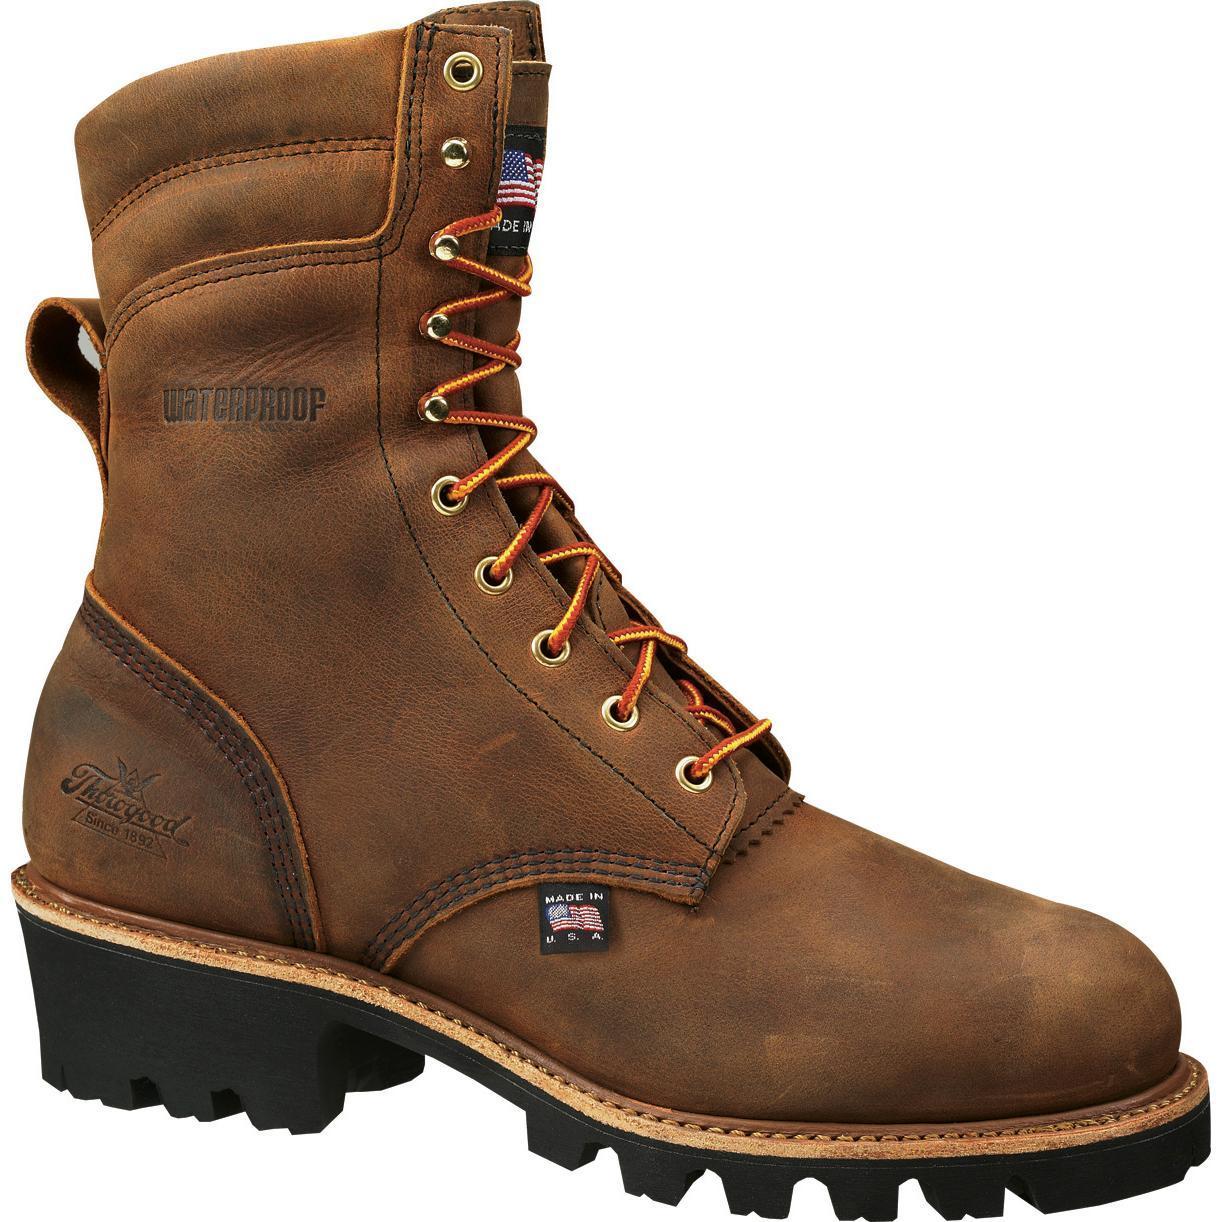 Thorogood Steel Toe Waterproof Insulated Logger Work Boots